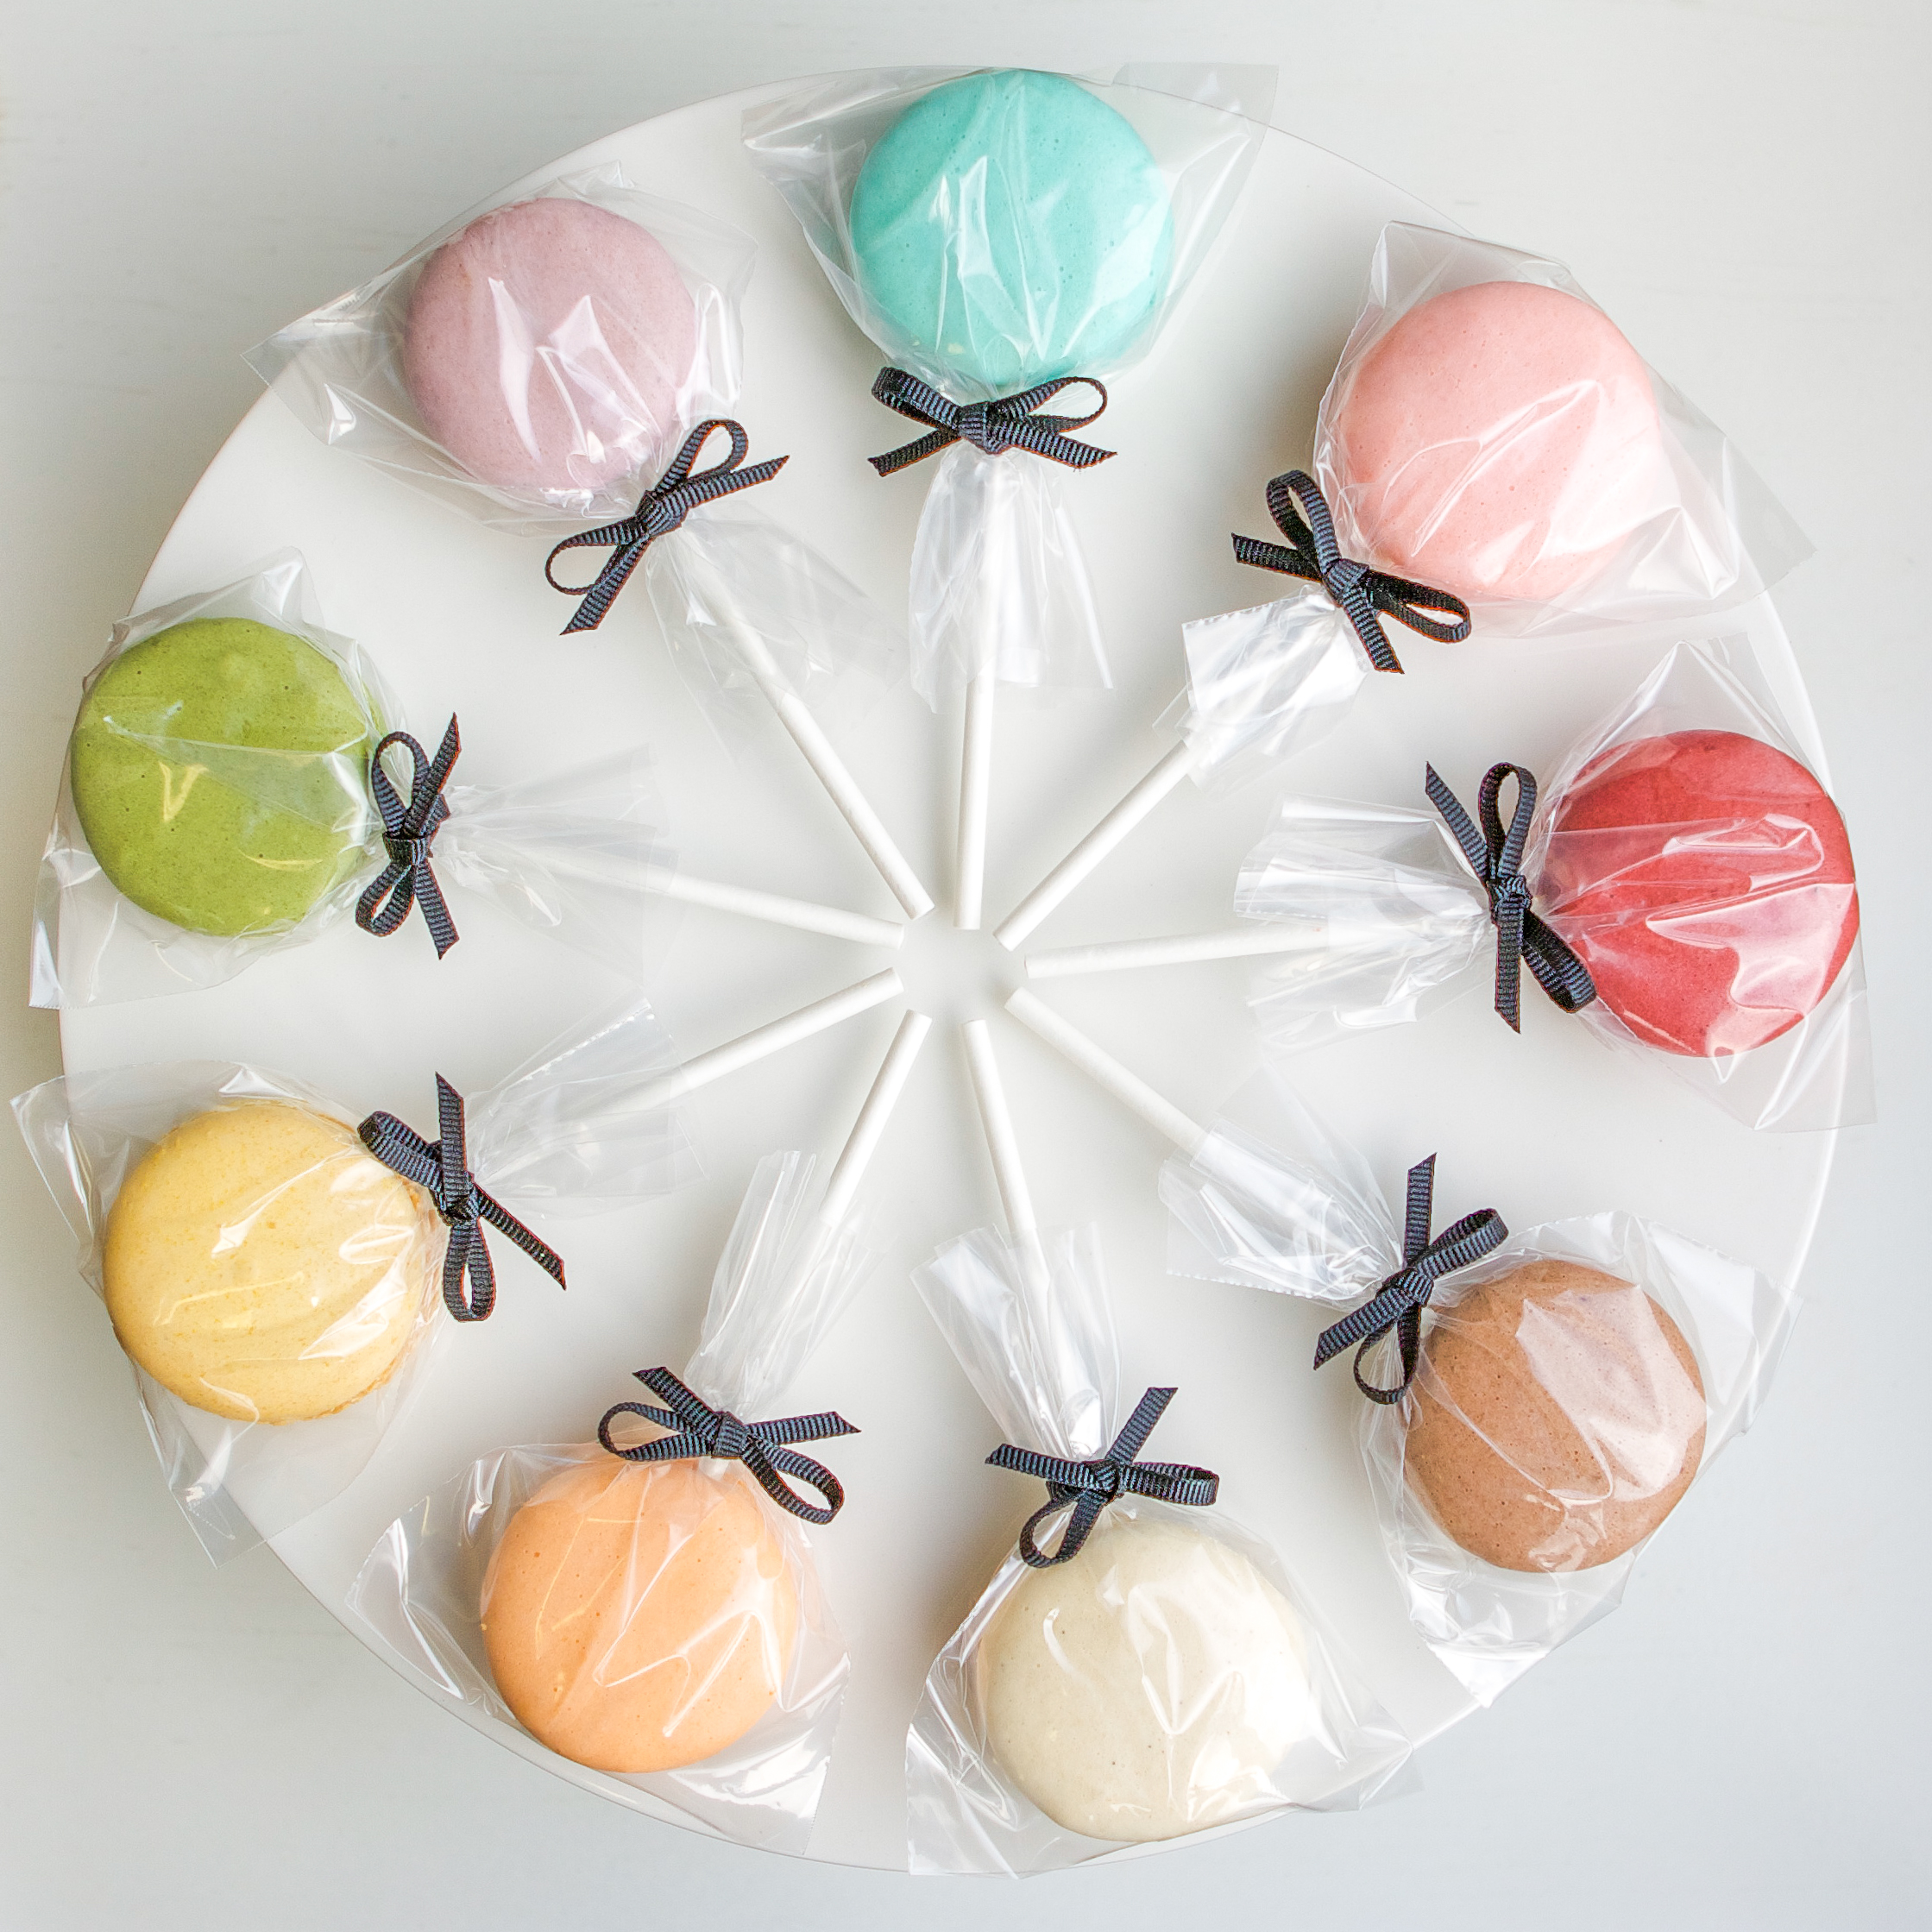 Crafts For Home Decor Thirsty For Tea Fillings For Macaron Pops